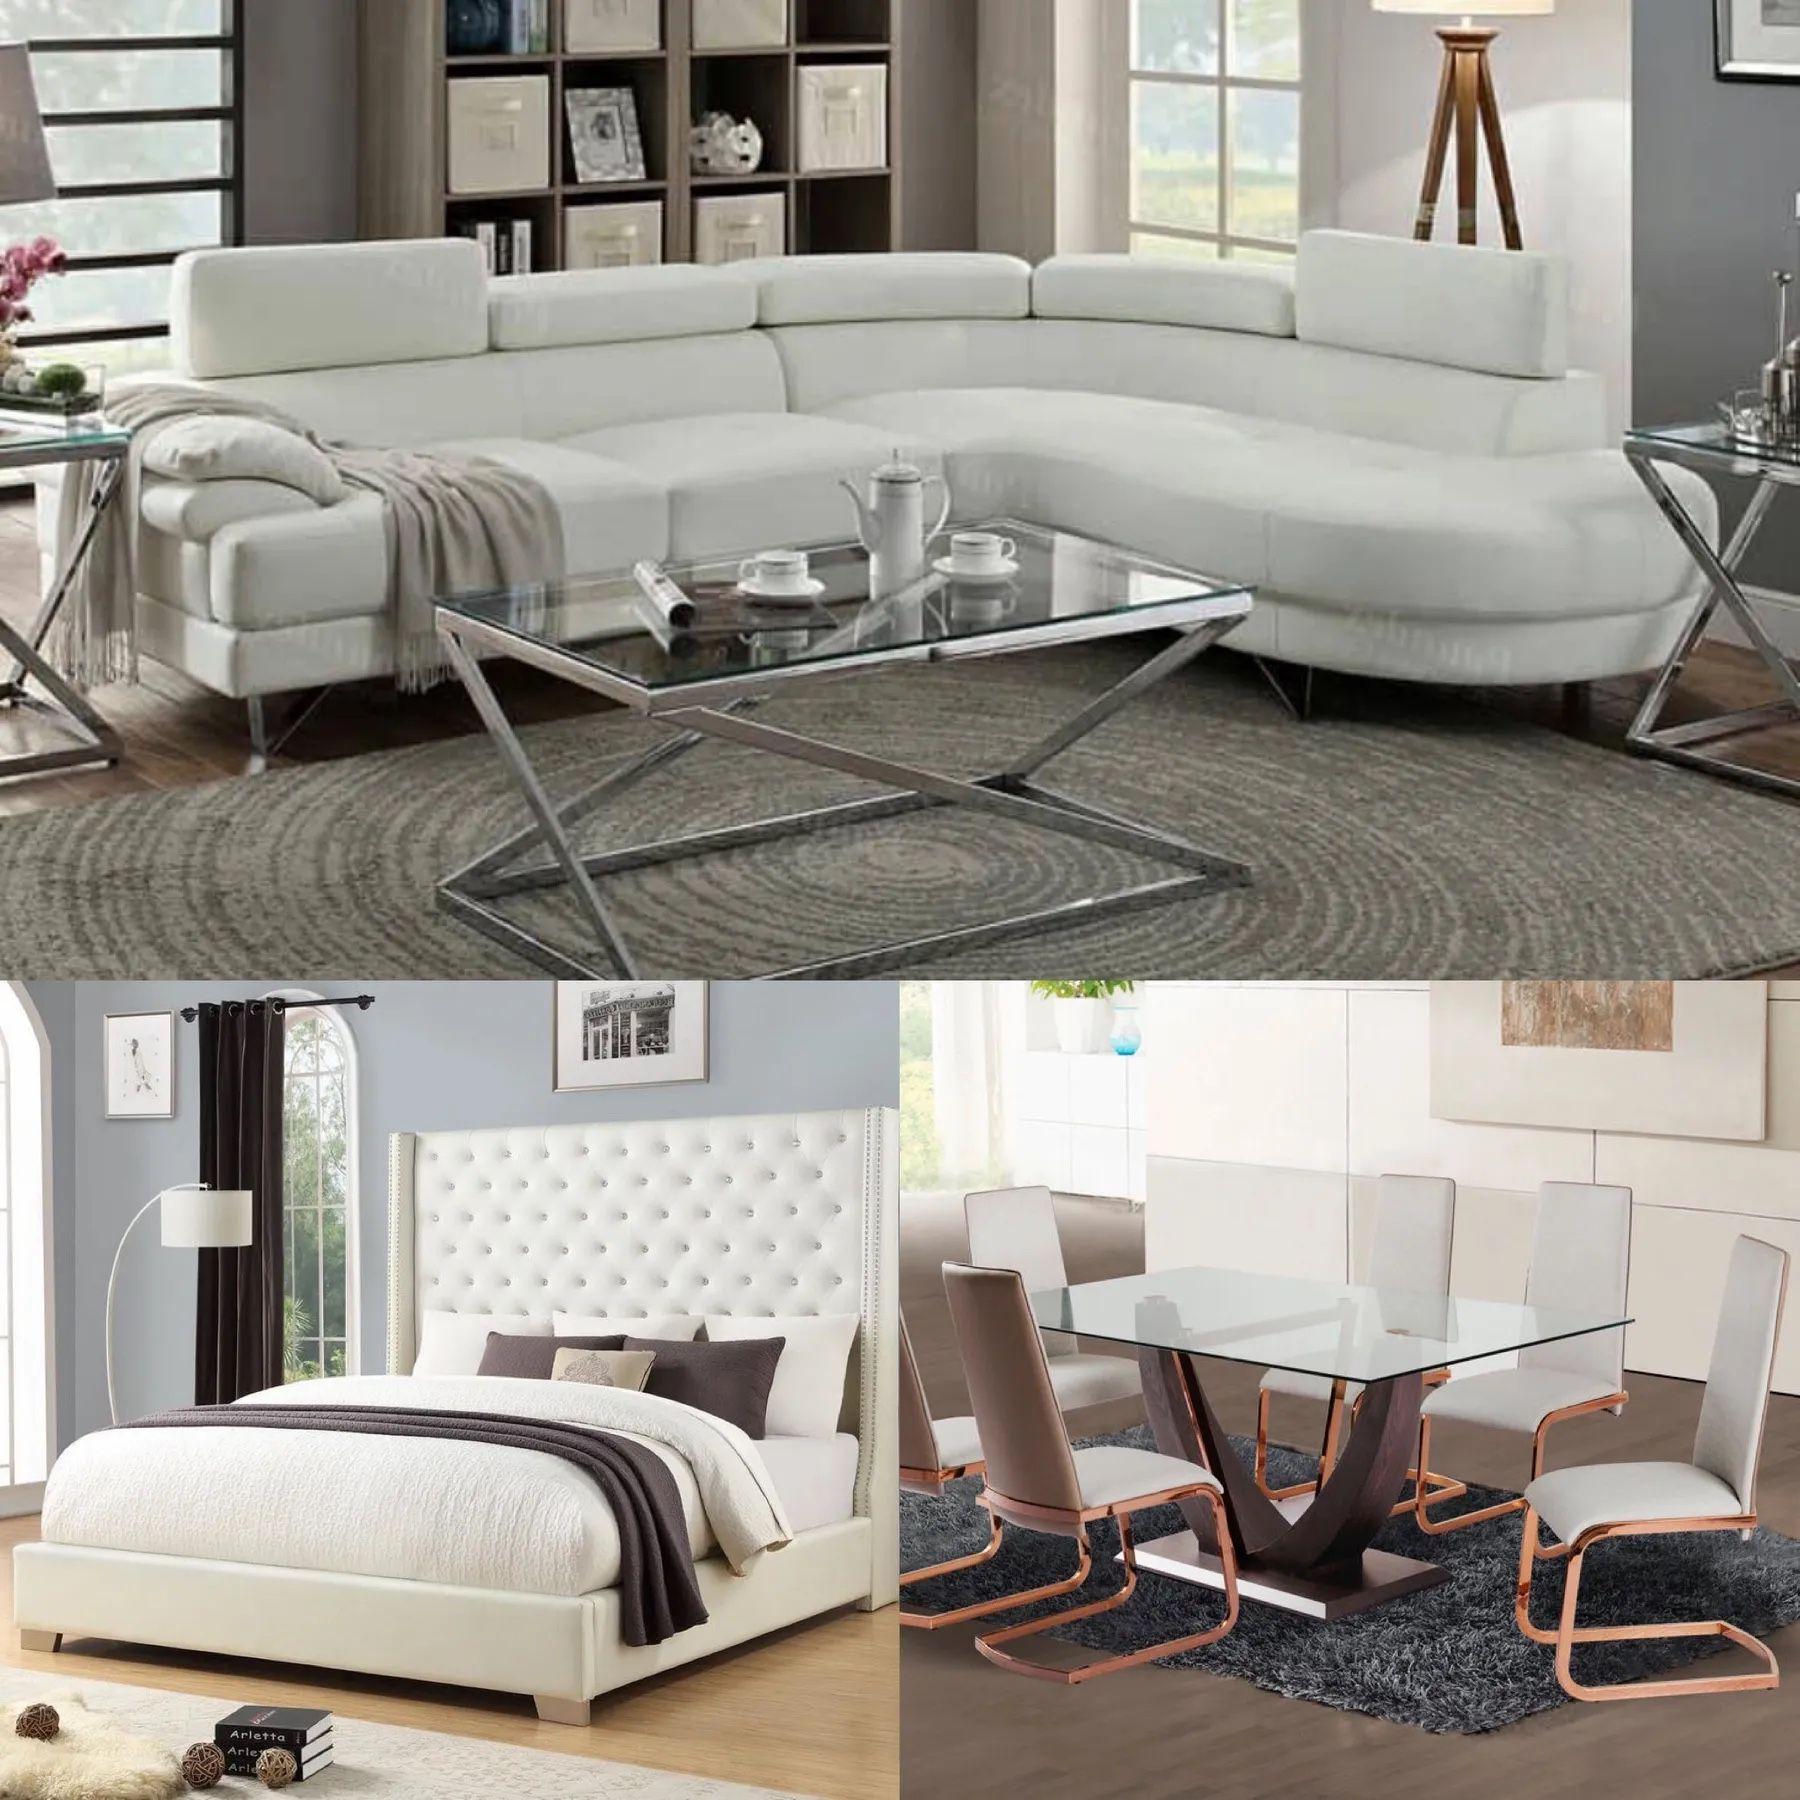 3 Room Of Furniture Package Deal 40 Down